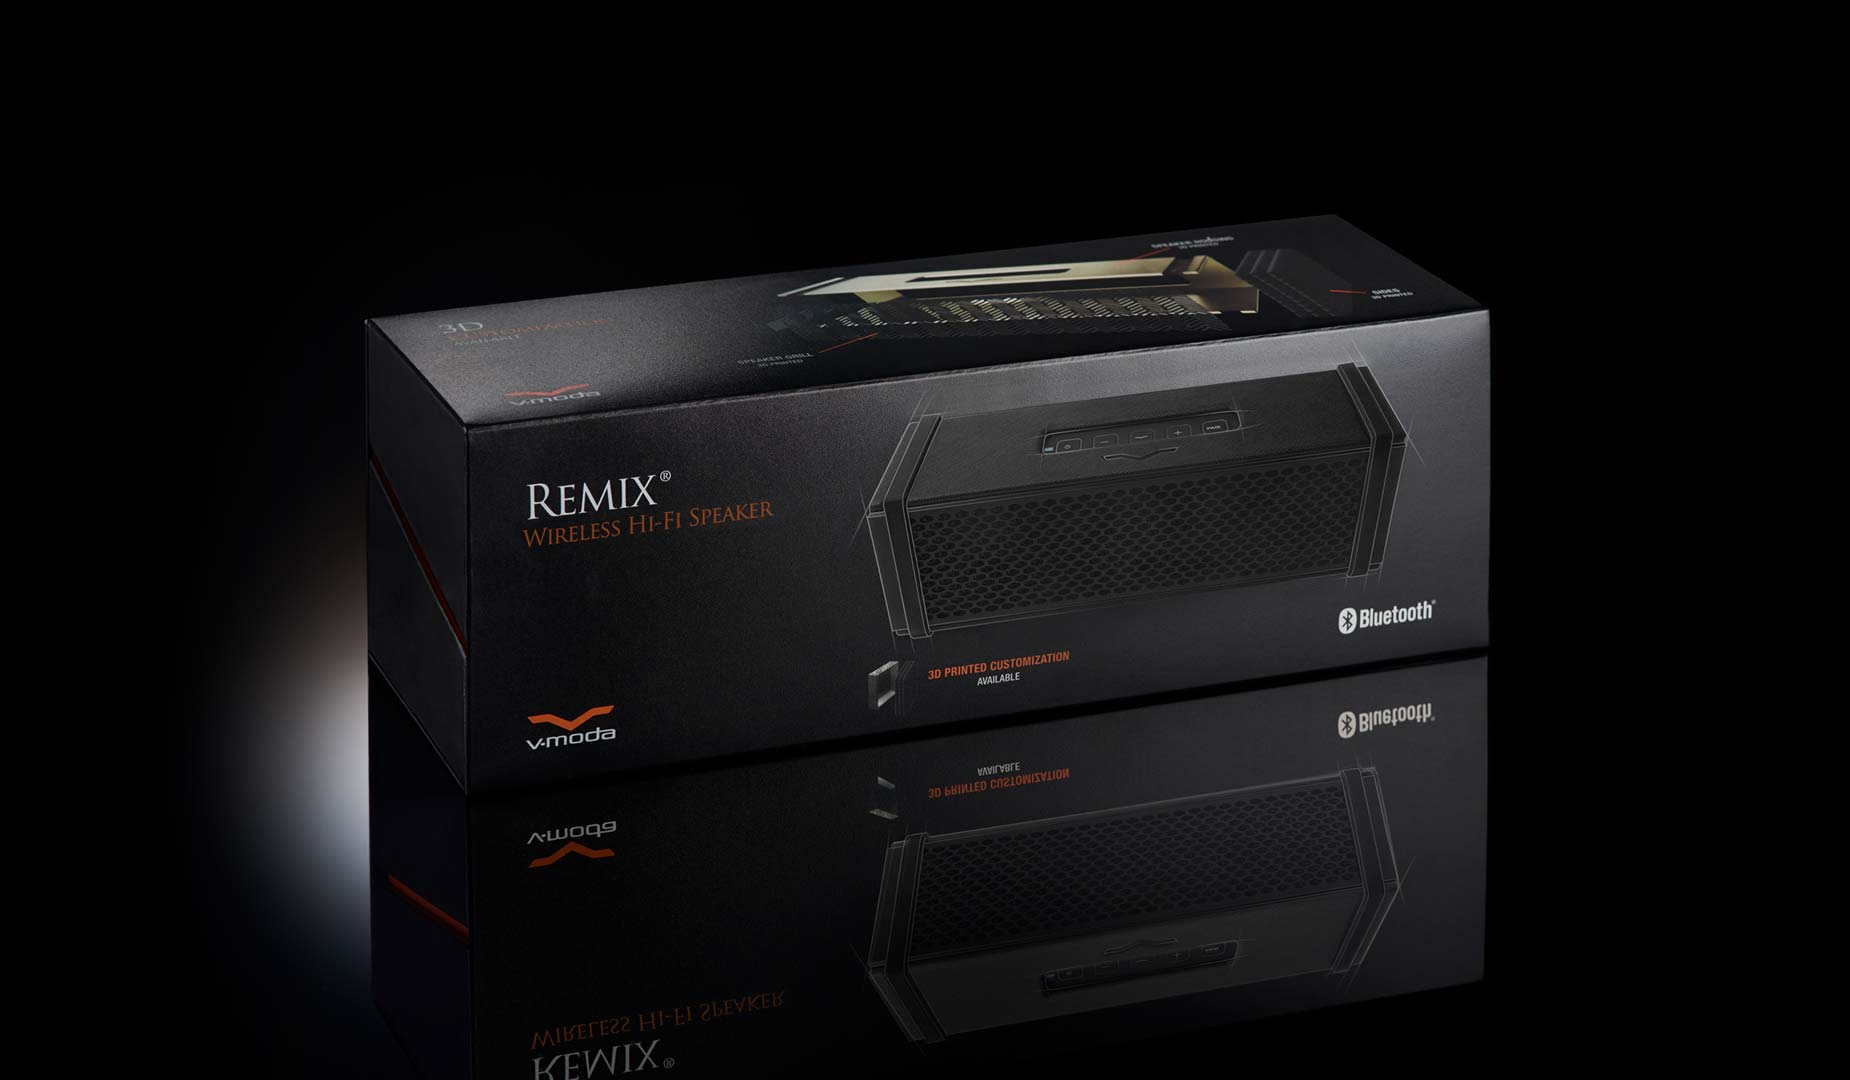 Remix Speaker Package